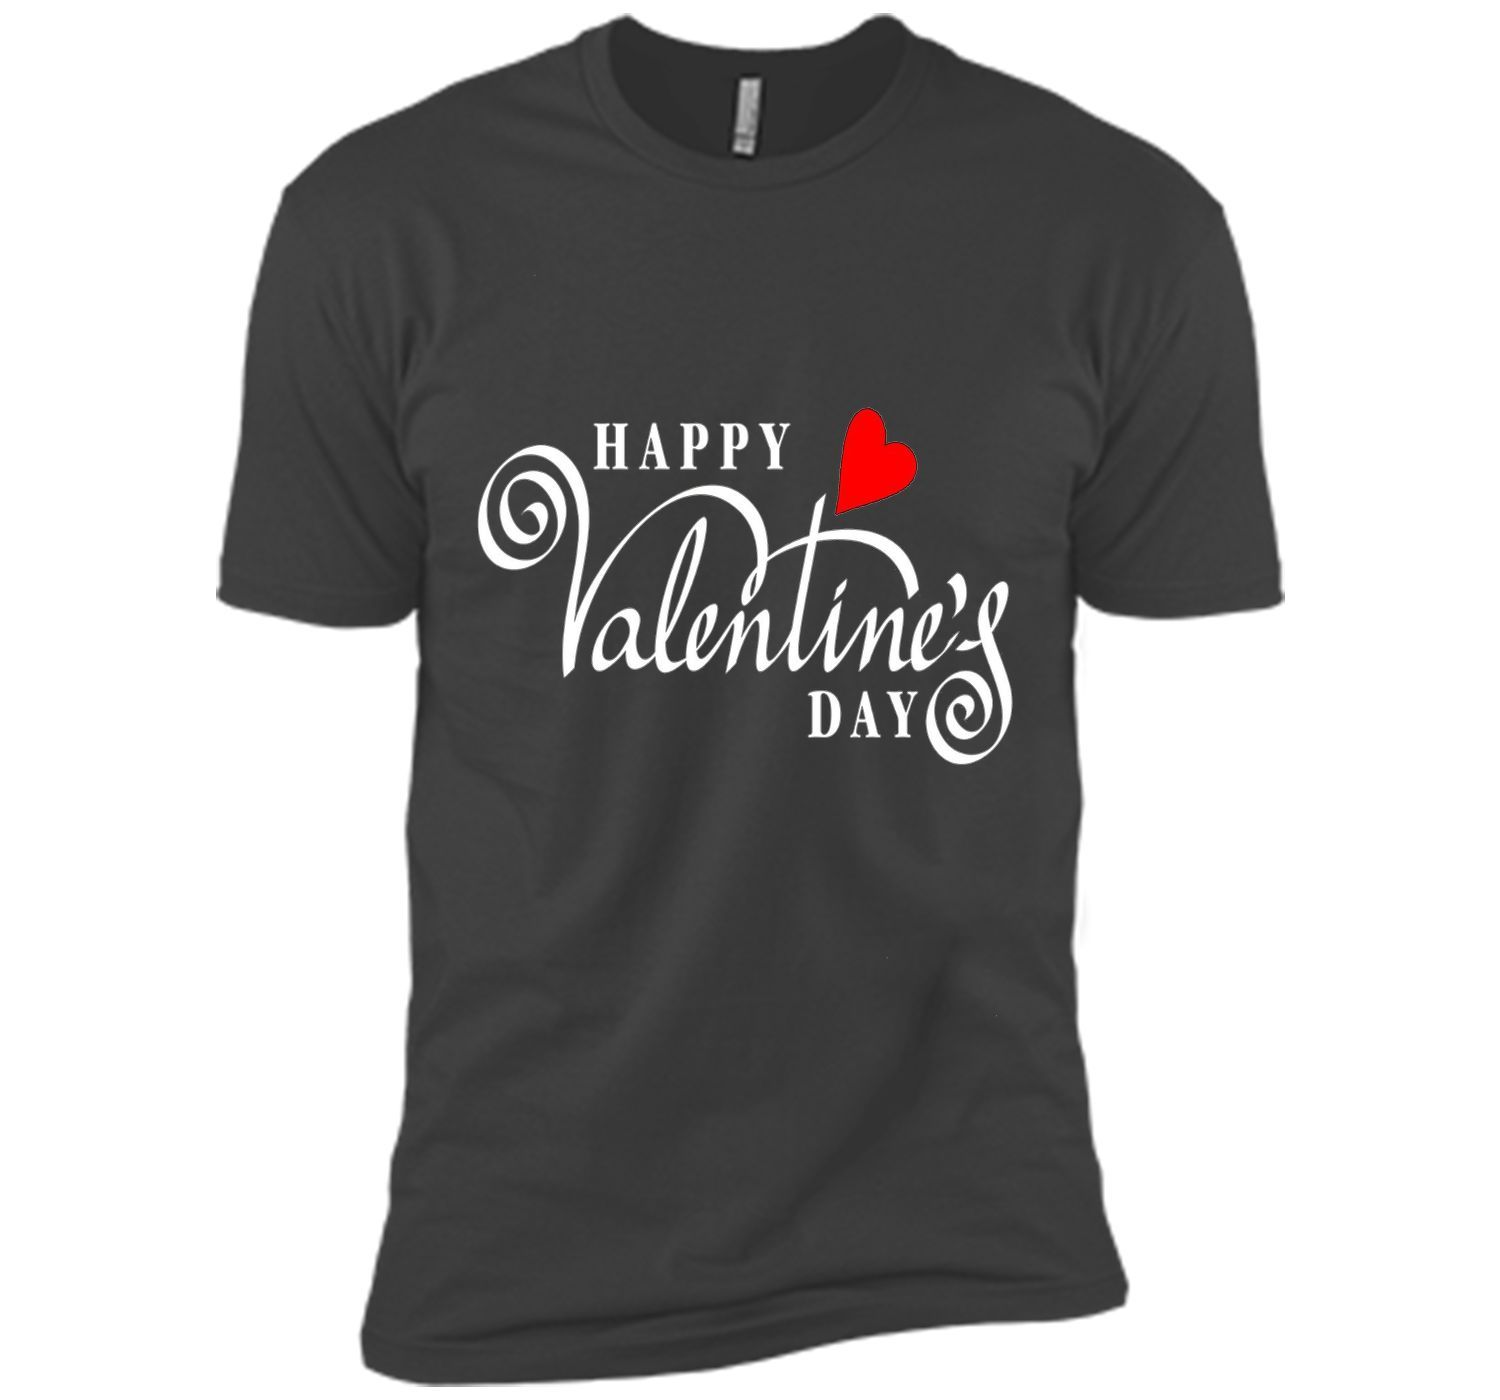 Happy Valentineu0027s Day T shirt with Cool Cursive